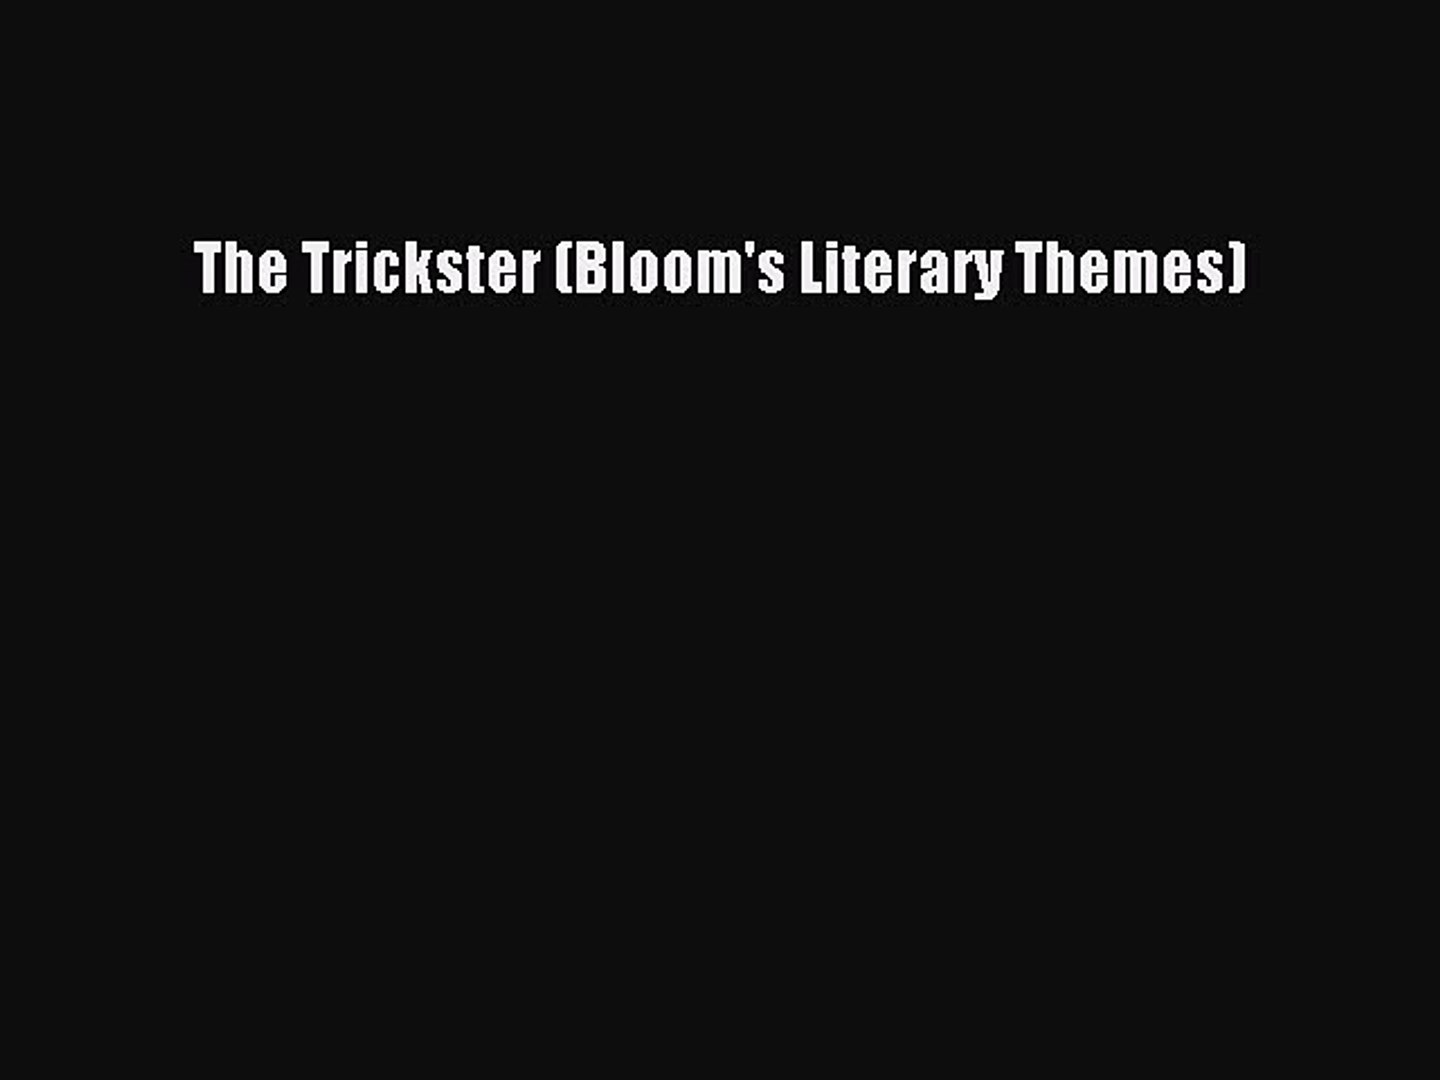 The Trickster (Blooms Literary Themes)